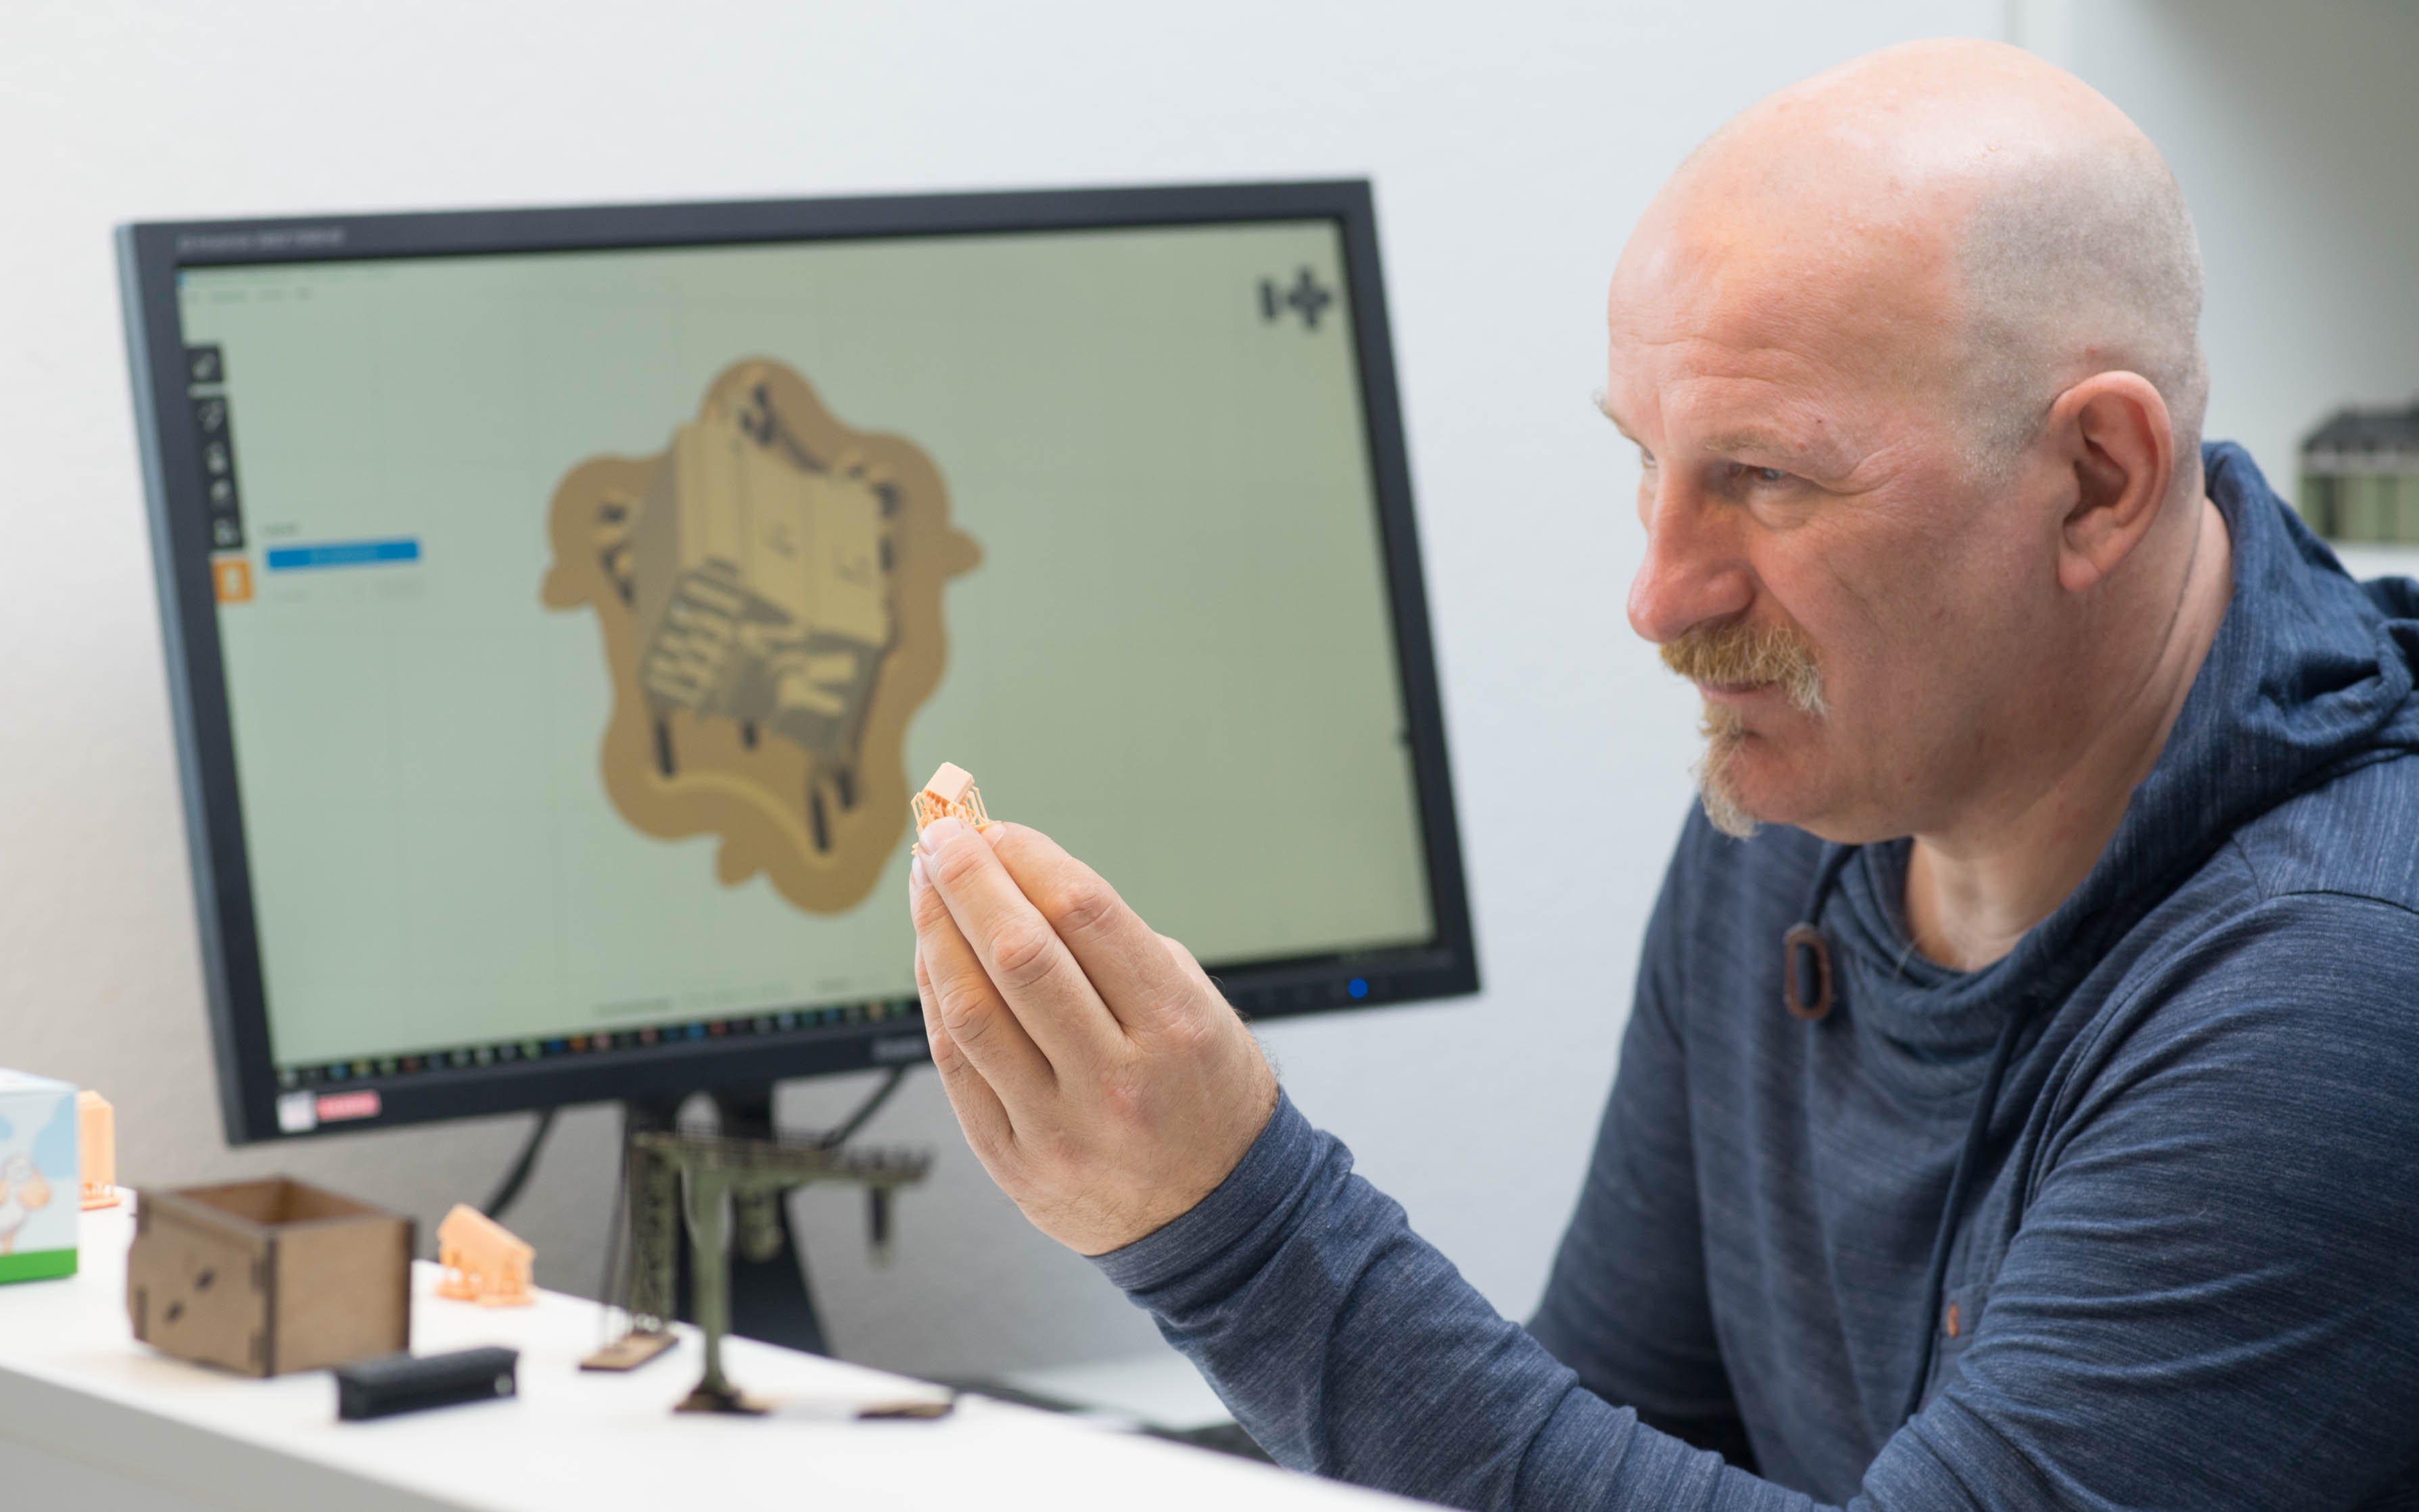 Joep Stienen is Production Manager at DM-Toys. He uses CAD/CAM and 3D printing to develop and manufacture models such as this compressor, shown on screen in Formlabs PreForm print preparation software. Photo: Ken Giang